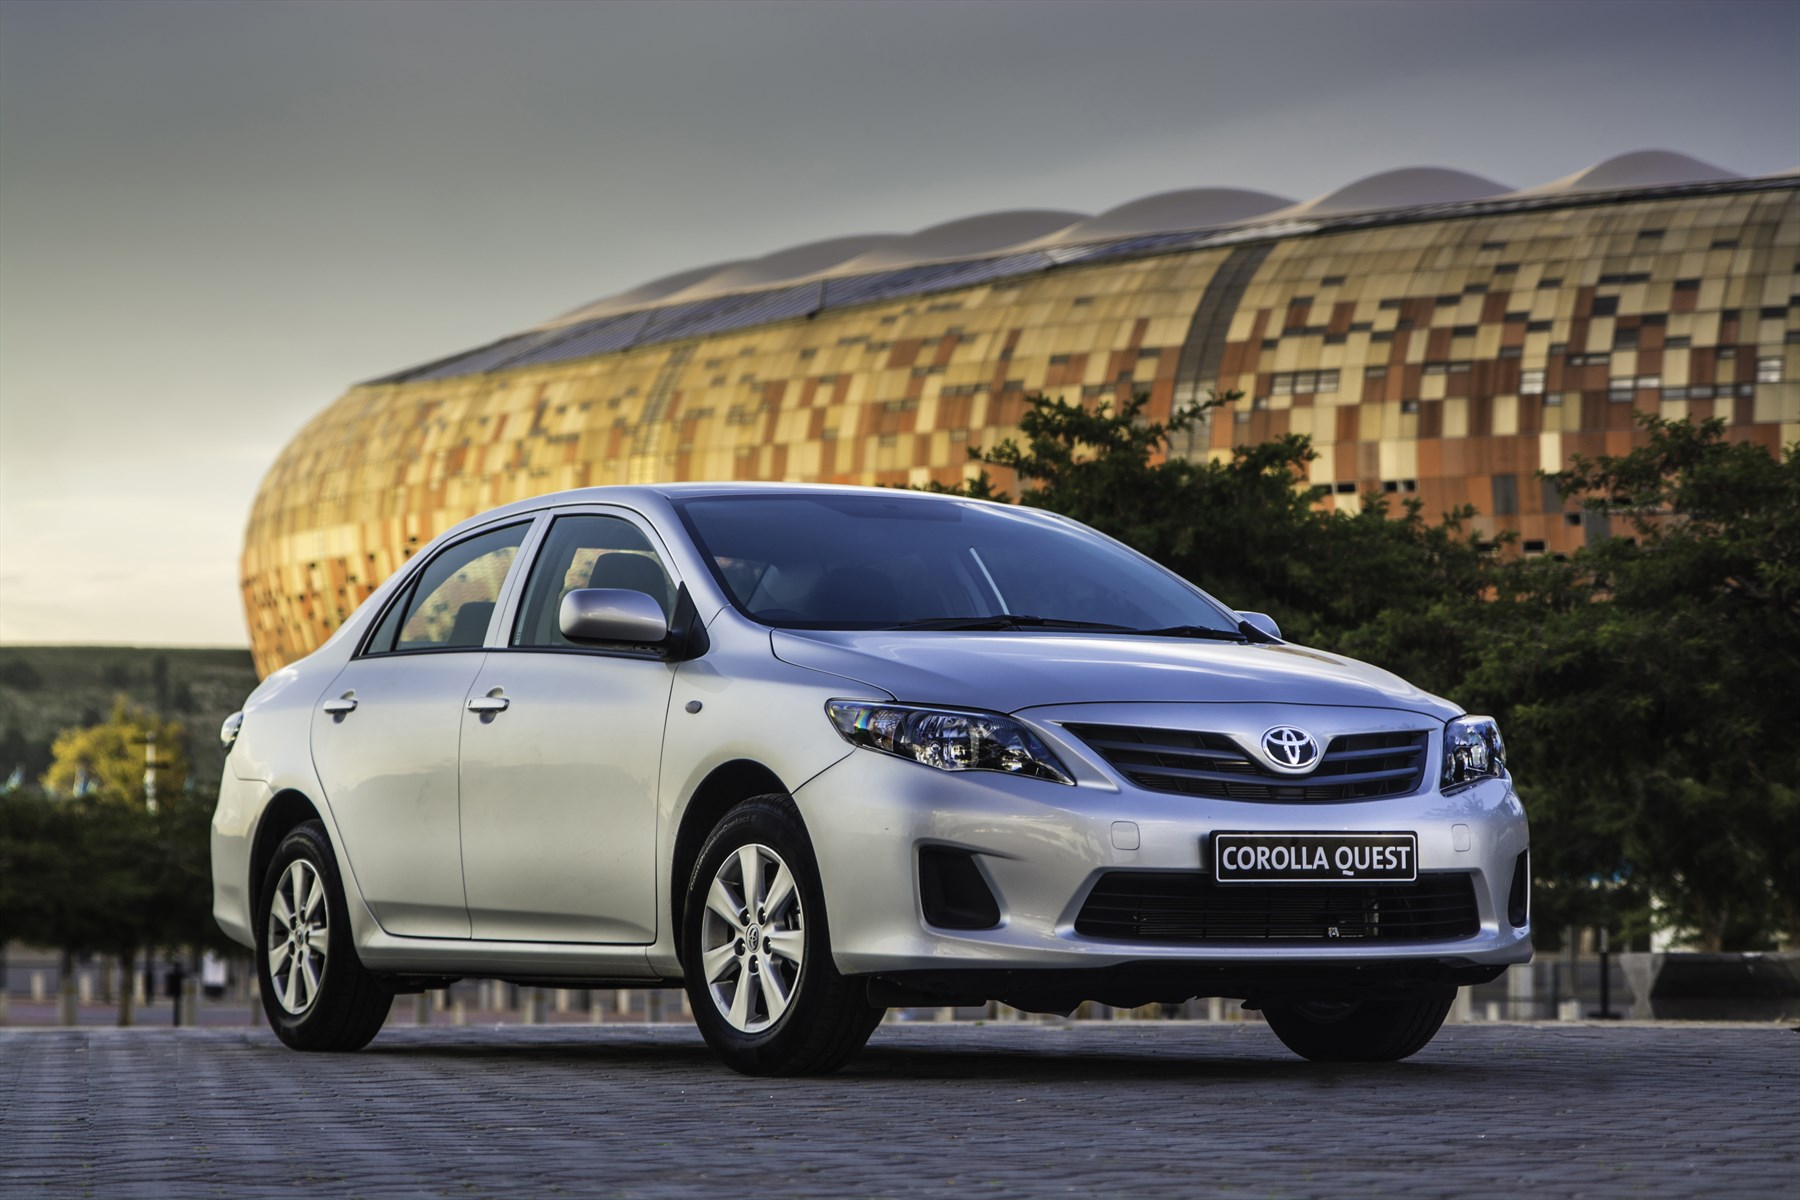 toyota corolla quest car review latest news surf4cars. Black Bedroom Furniture Sets. Home Design Ideas